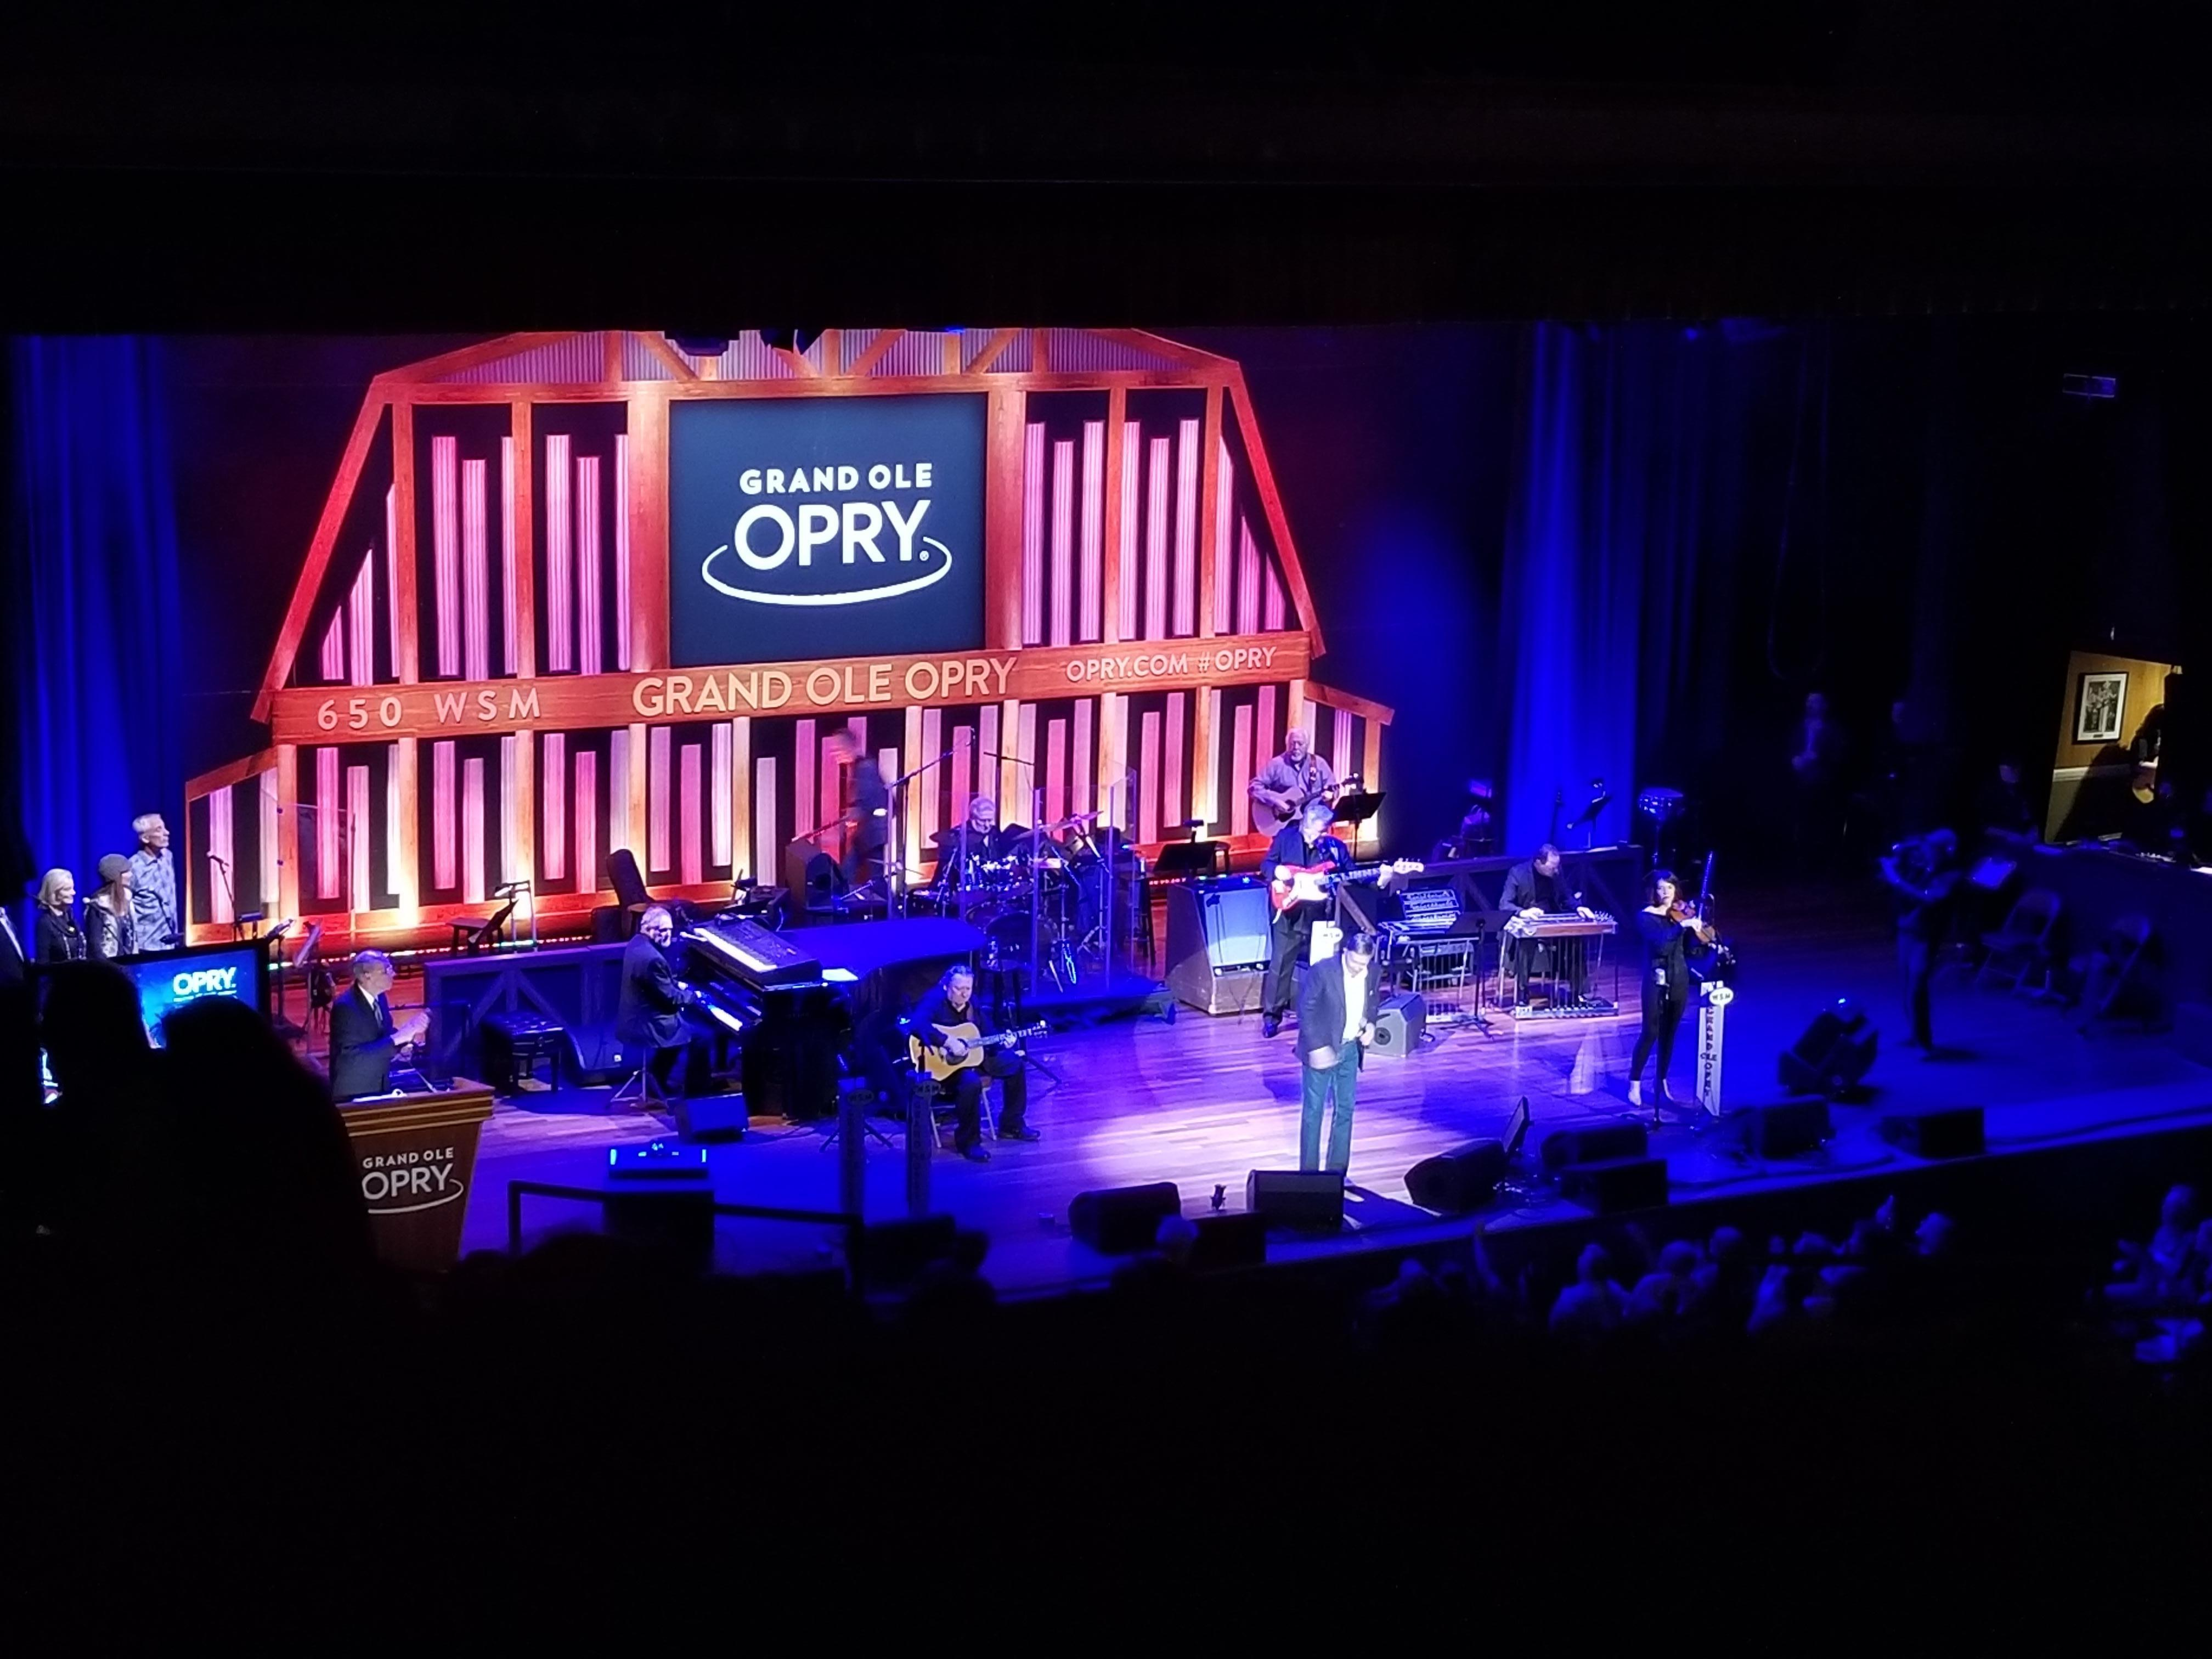 Grand Ole Opry Tickets >> Grand Ole Opry Country Music Show Nashville